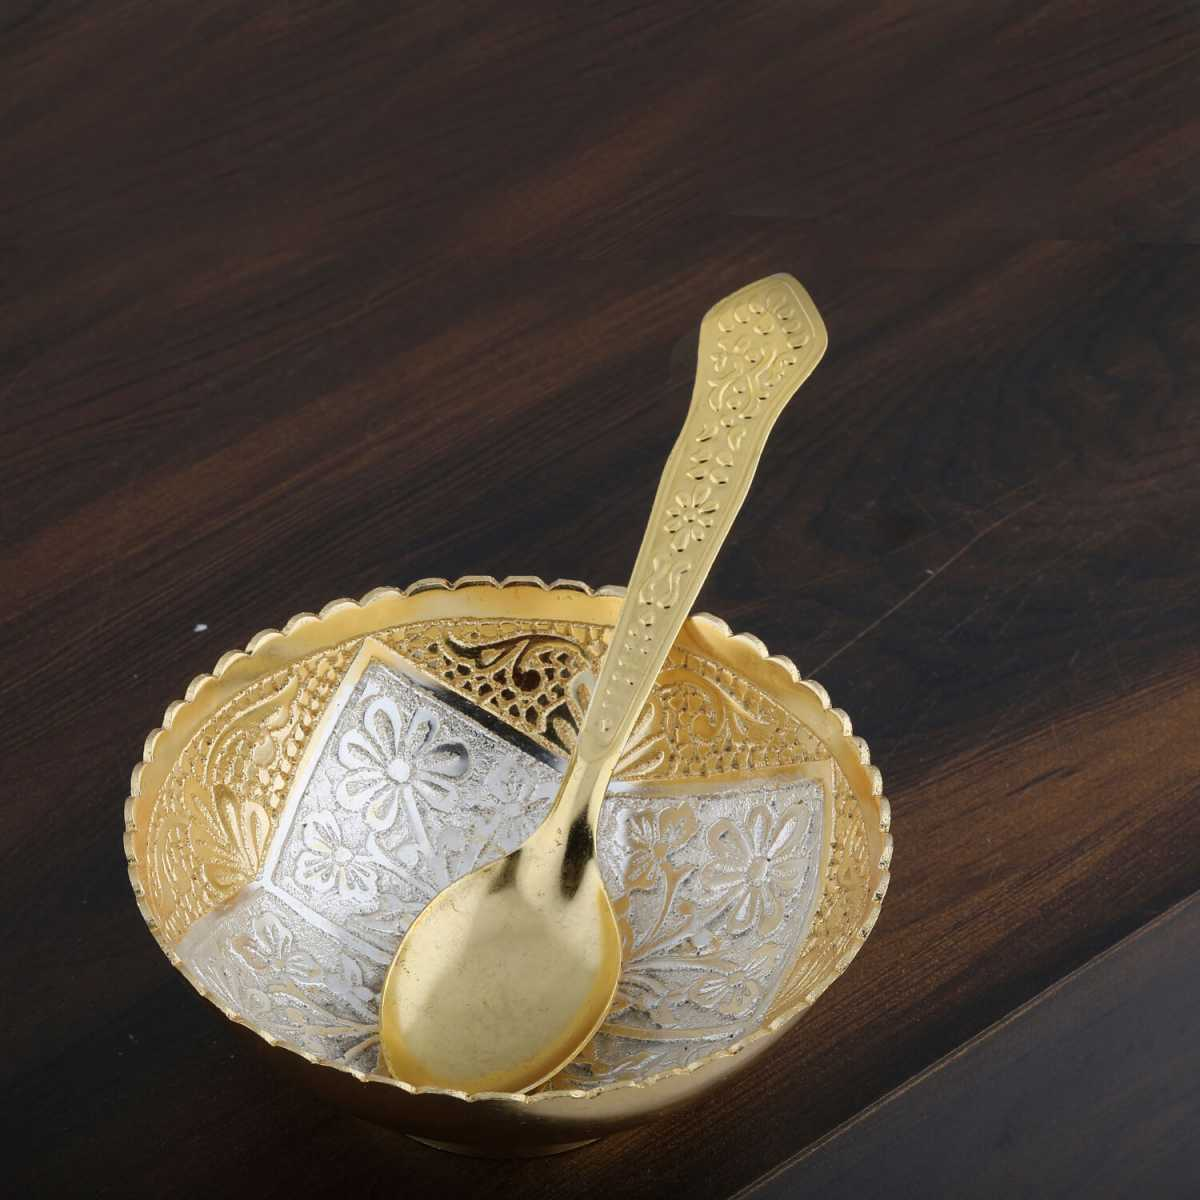 Silver Shine Gold And Silver Plated Decorative Bowl And Spoon Set For Gift-Set of 2